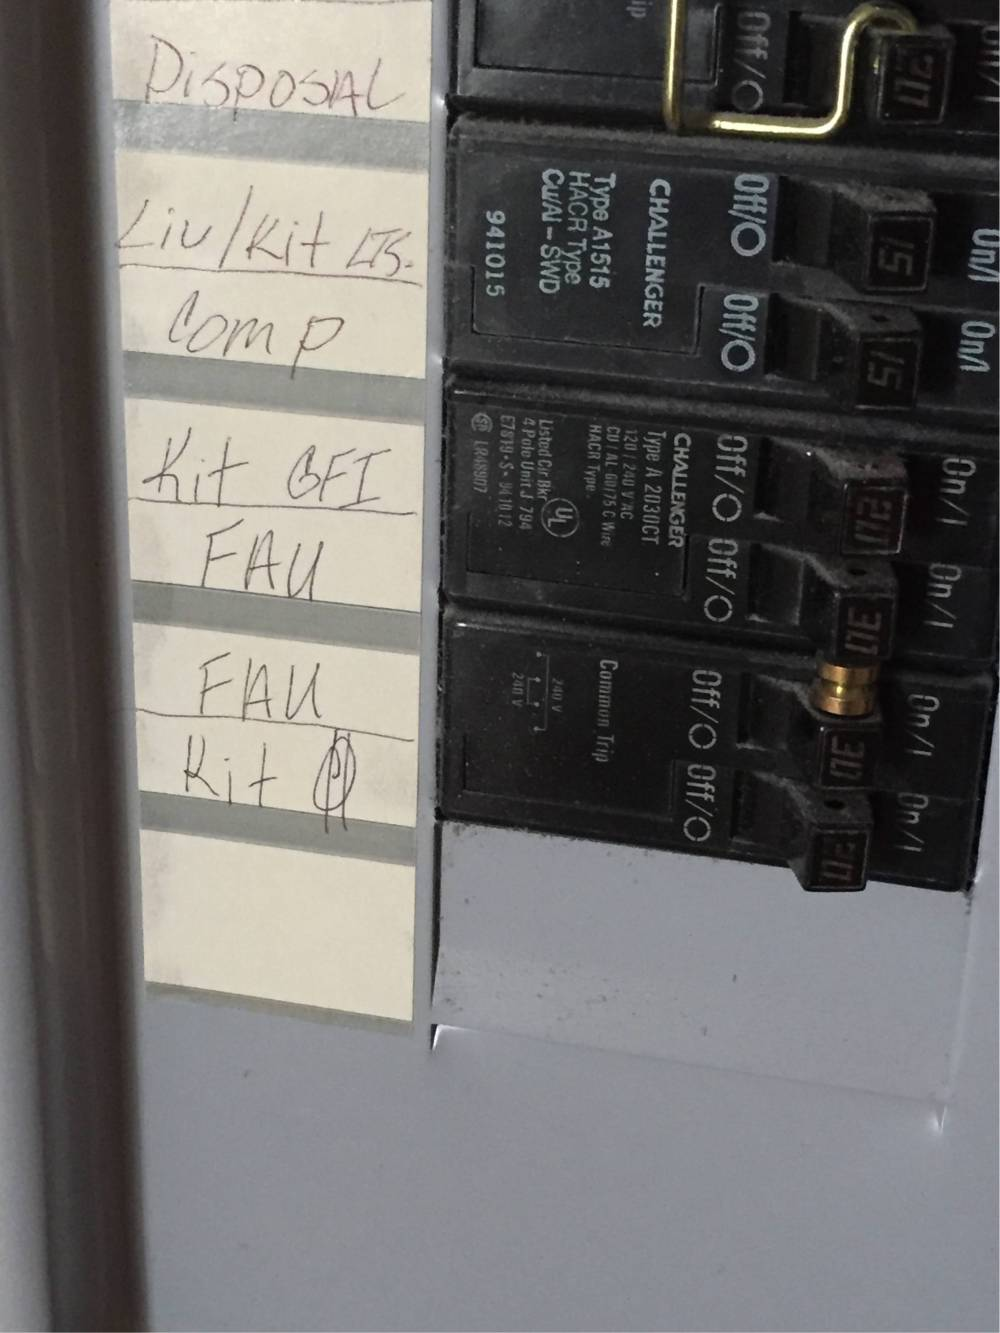 medium resolution of electrical terminology in the breaker box home improvement stack home electrical fuse box fuse box labels kit